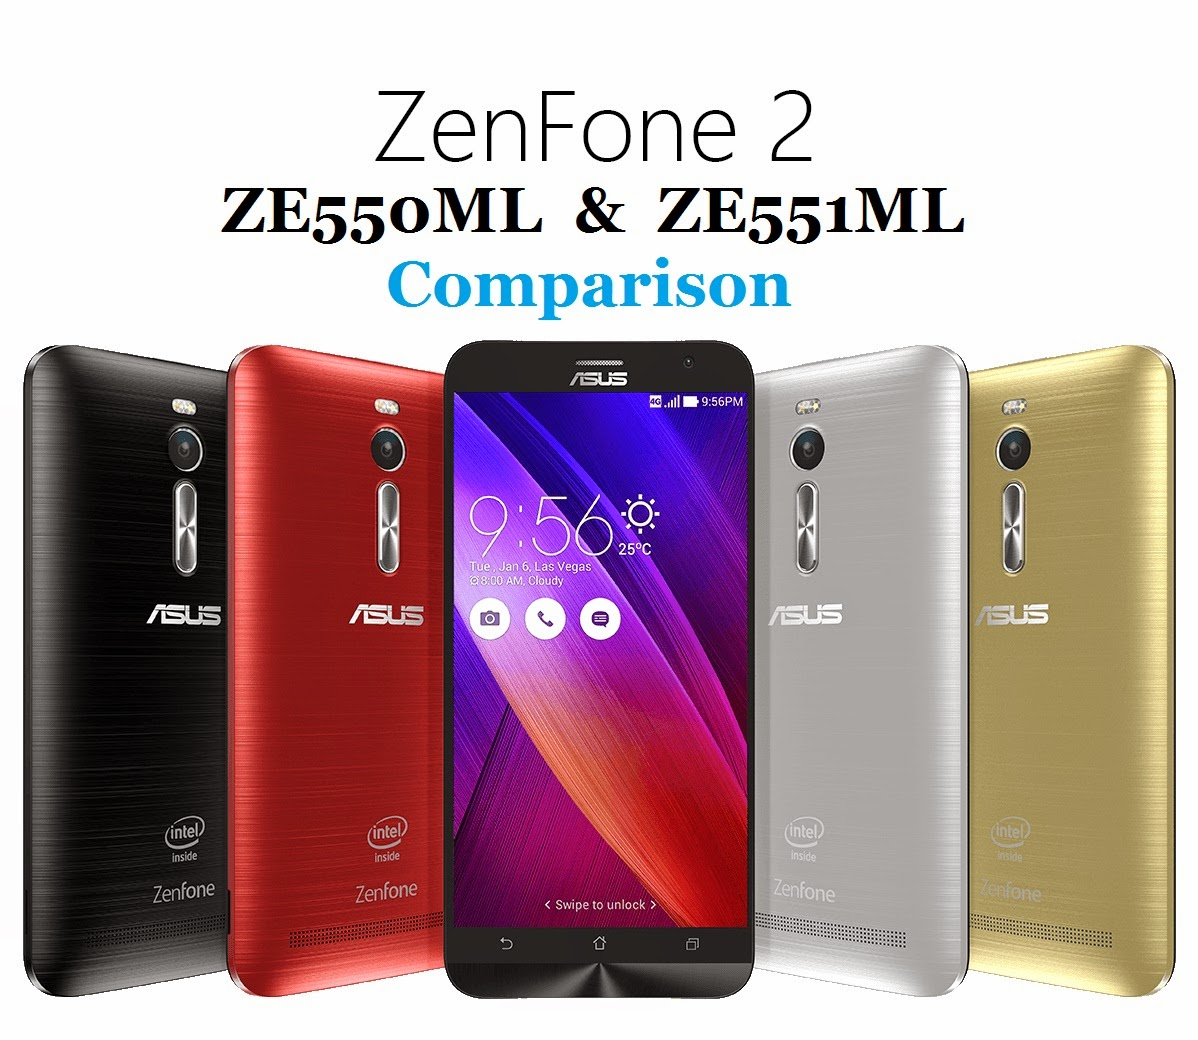 specs comparison of zenfone2 ze551ml and ze550ml specification, color, ram, storage, android 5.0 lollipop os compare